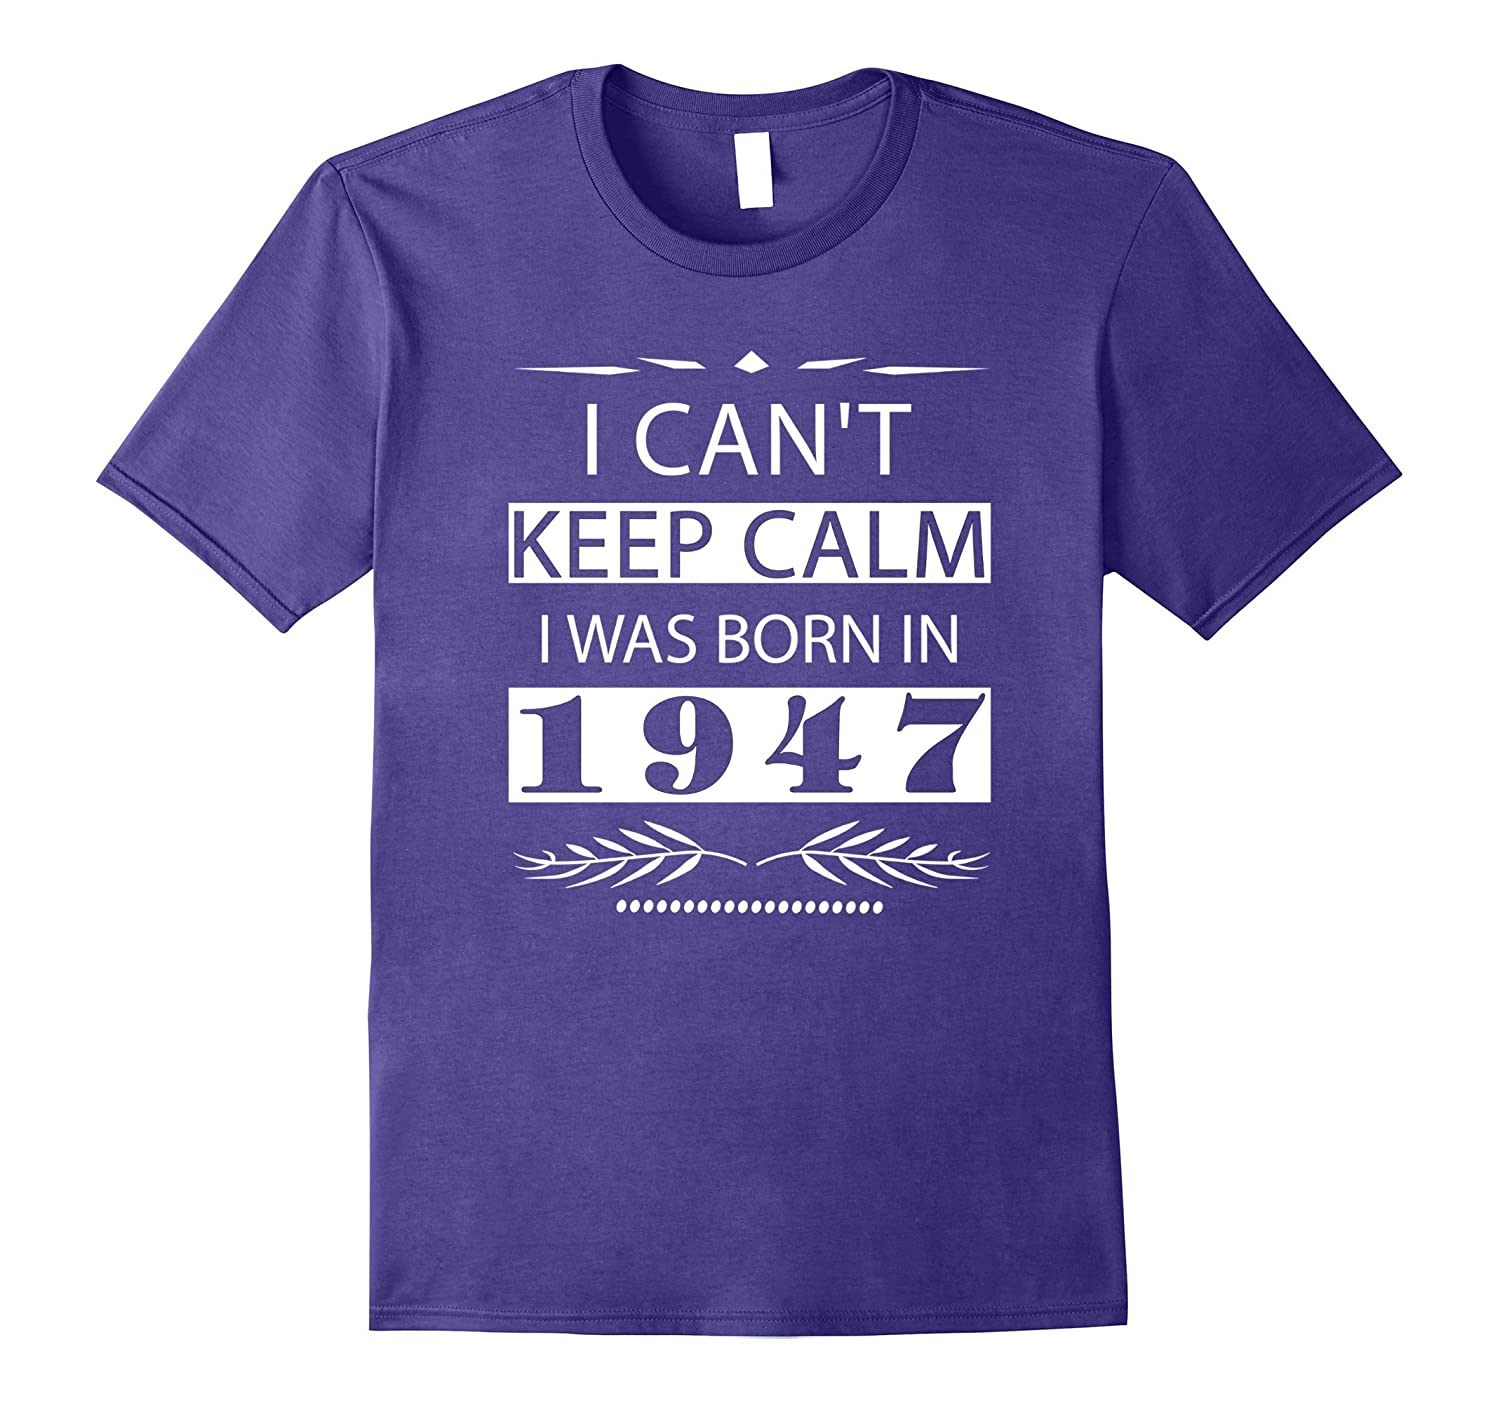 1947 t shirt birthday gift for 70 years old quote shirts